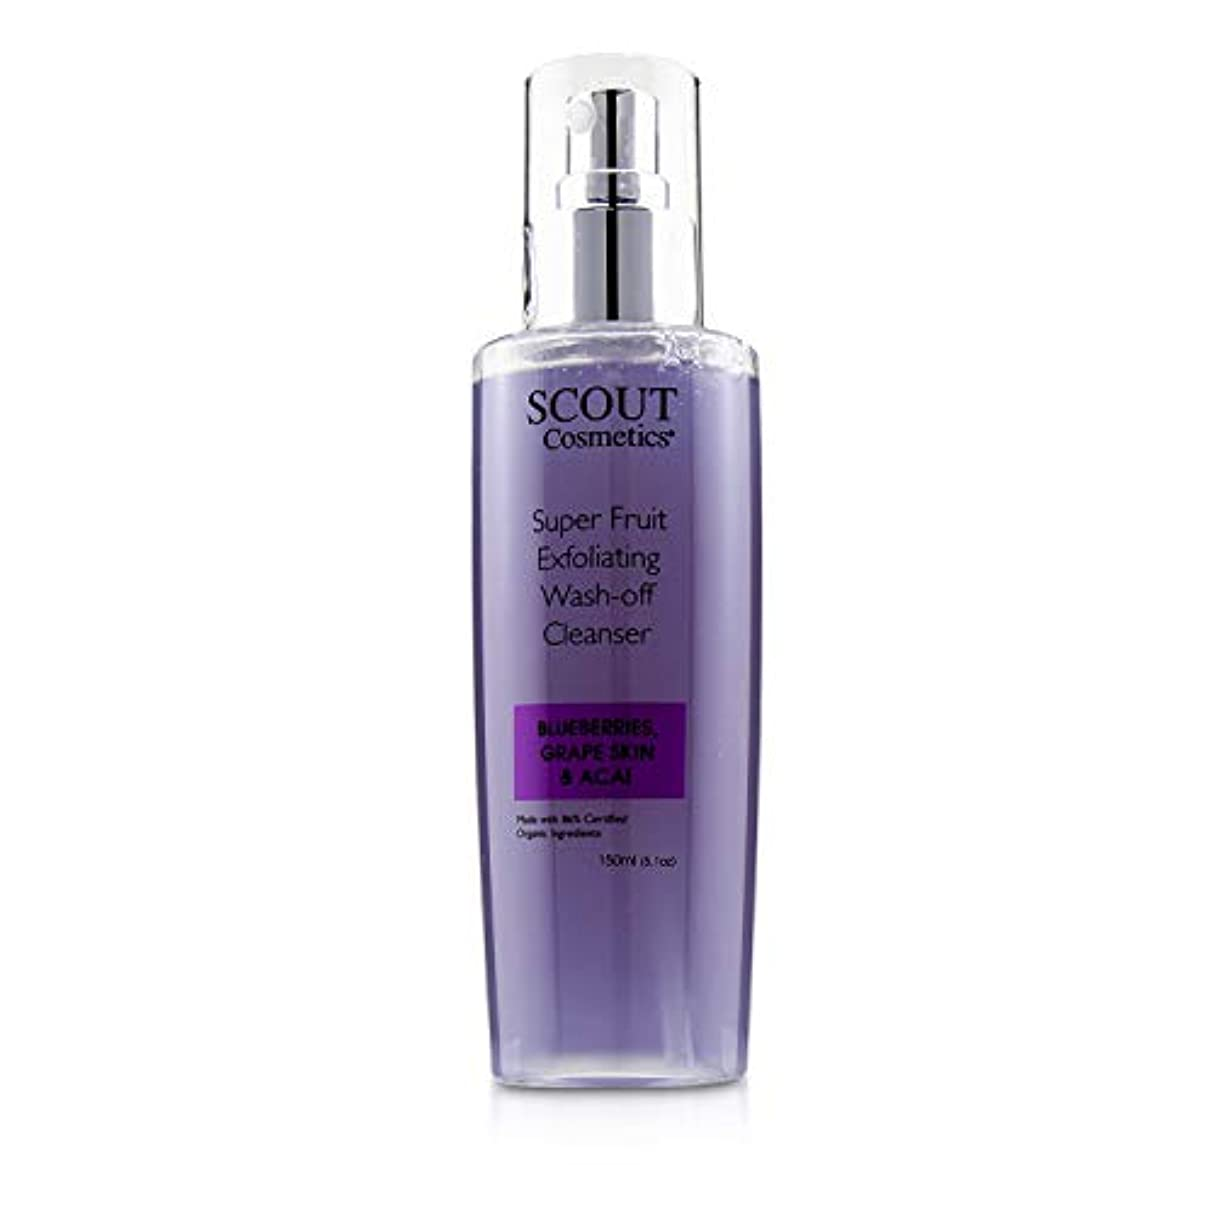 取得わがまま硬いSCOUT Cosmetics Super Fruit Exfoliating Wash-Off Cleanser with Blueberries, Grape Skin & Acai 150ml/5.1oz並行輸入品